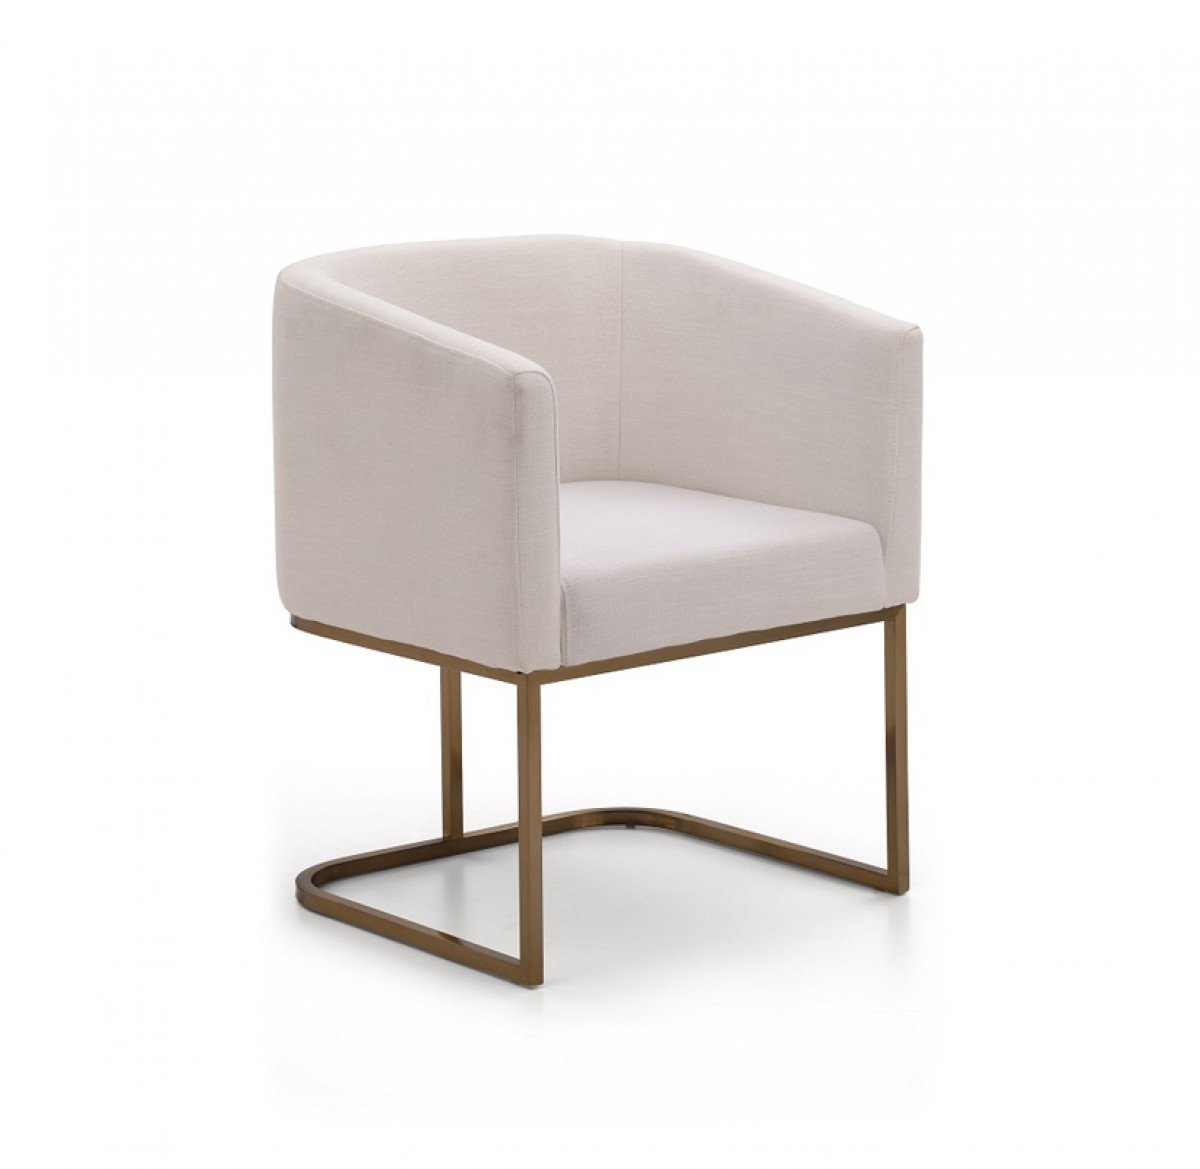 Limari Home The Sloane Collection Modern Fabric Upholstered Antique Brass Finished Stainless Steel Metal Kitchen Dining Room Chair, White